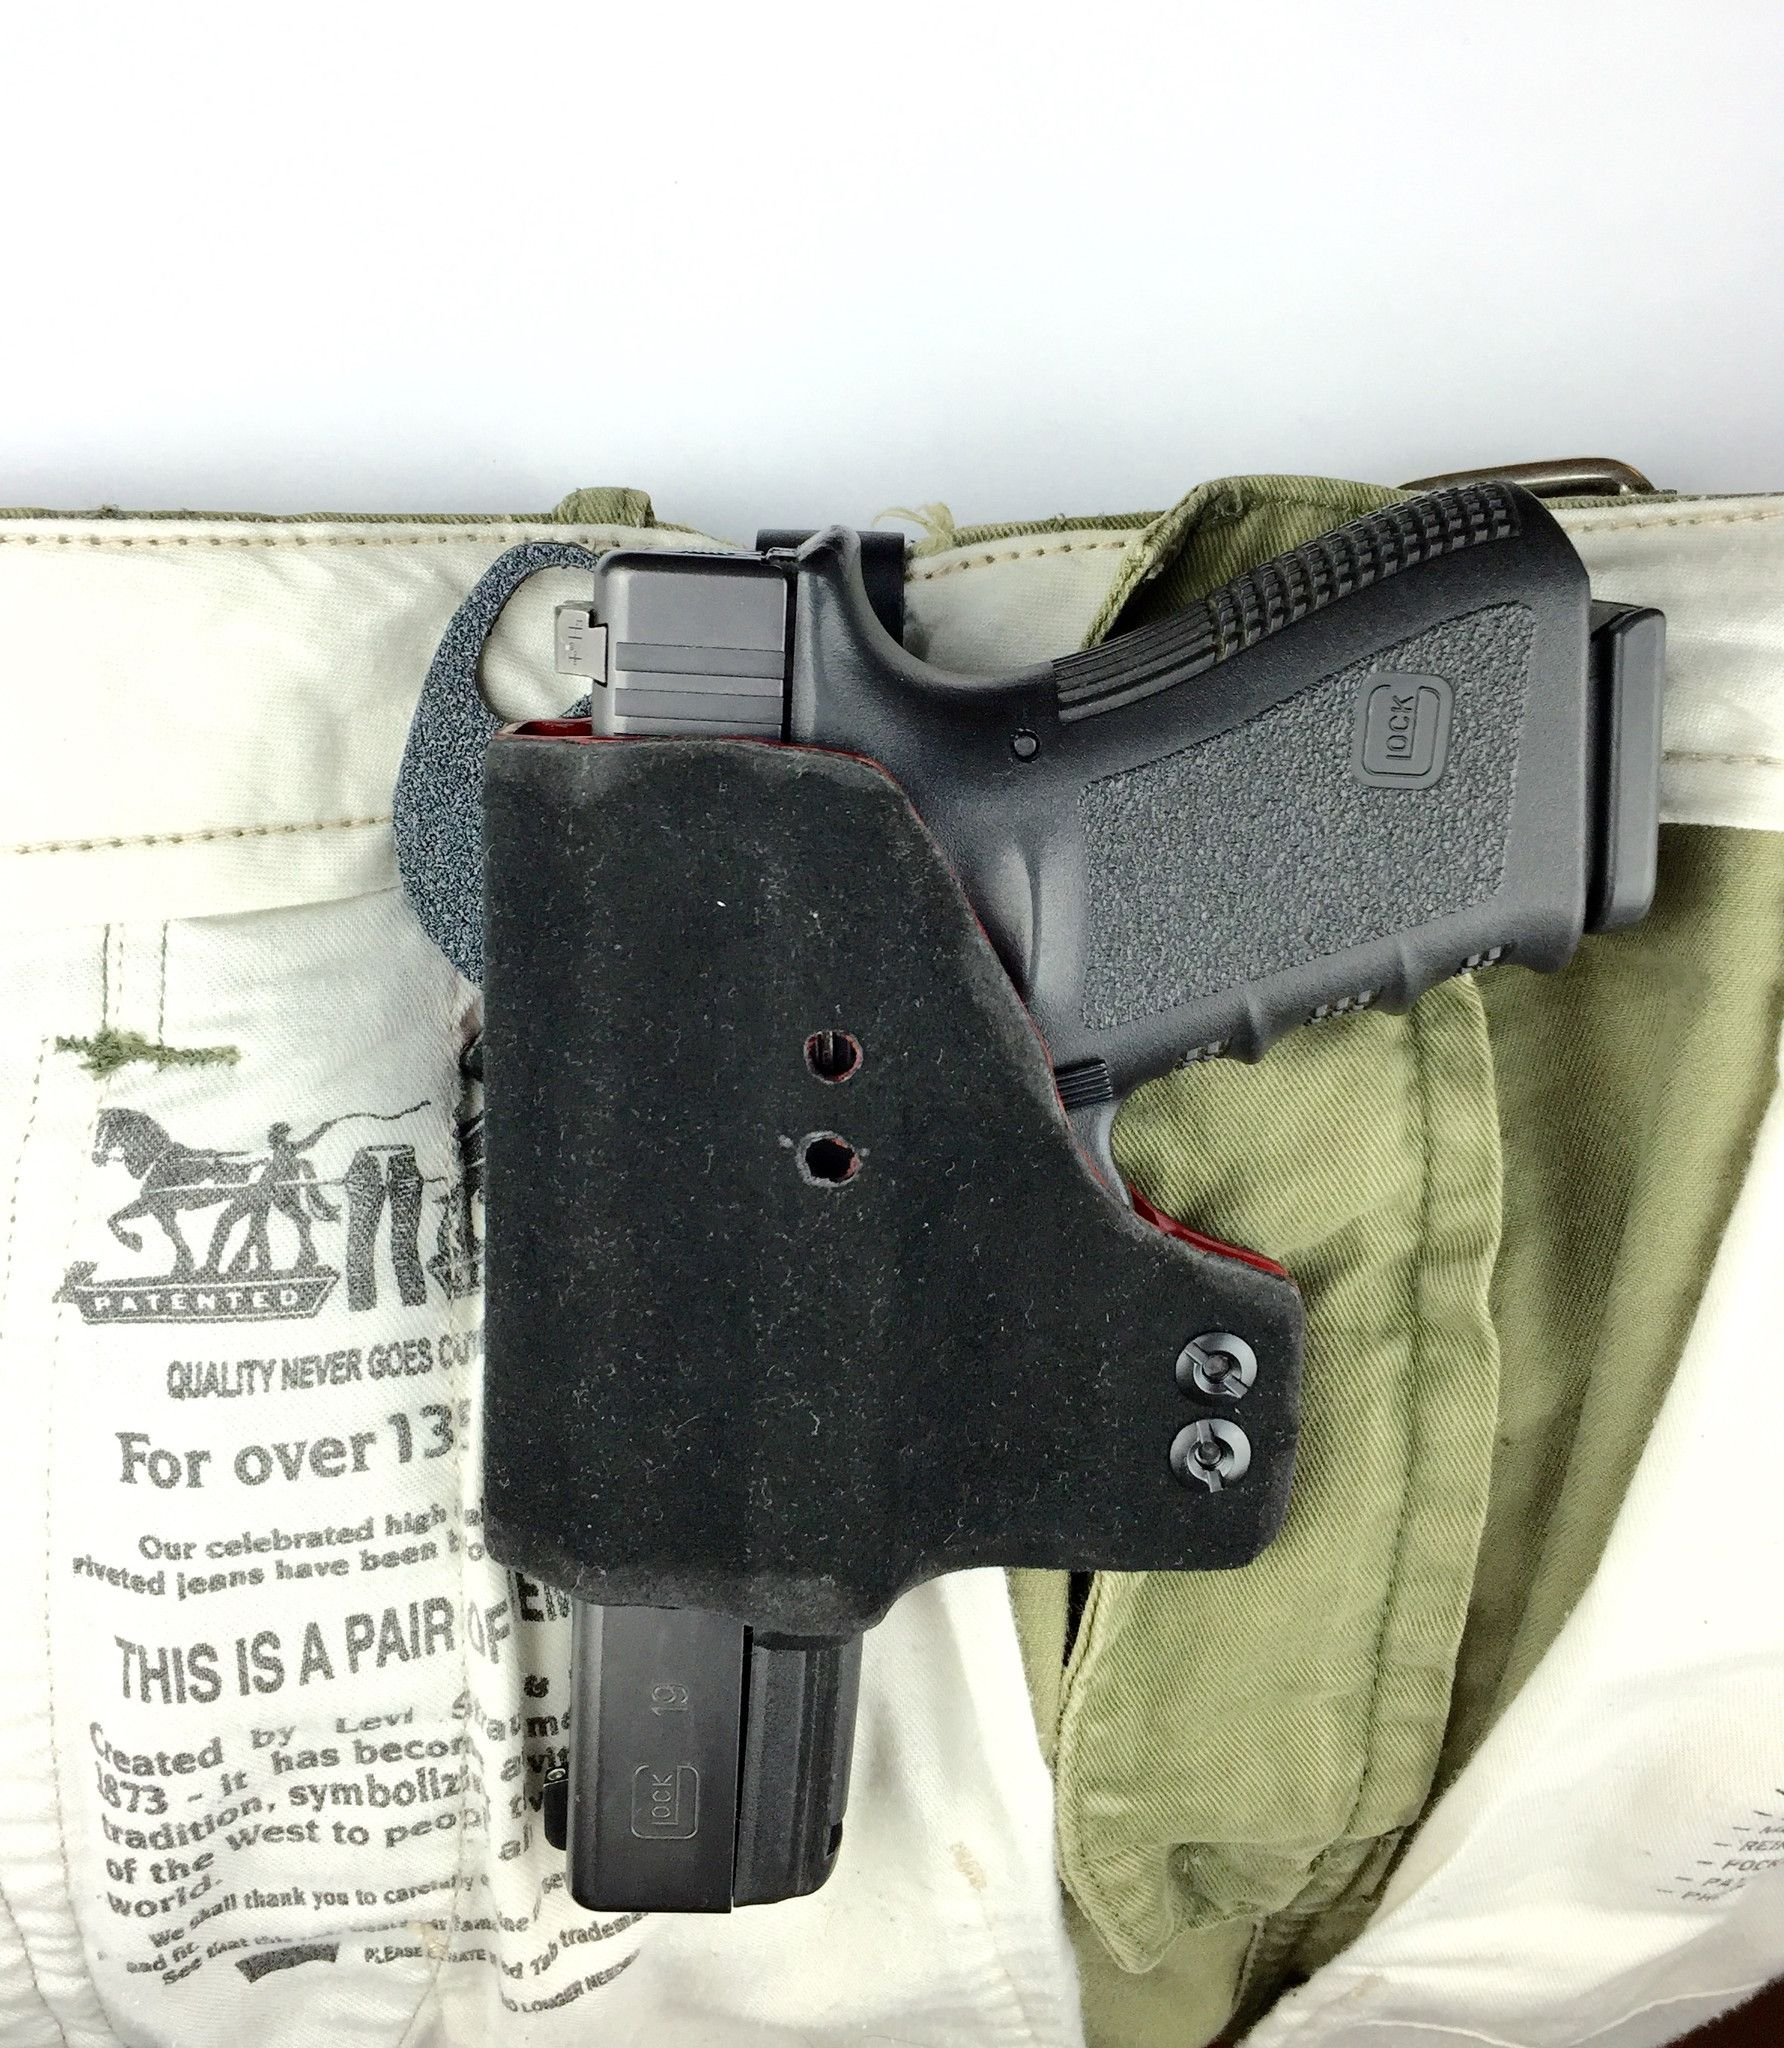 The cherries multi-fit deep concealment holster | concealed